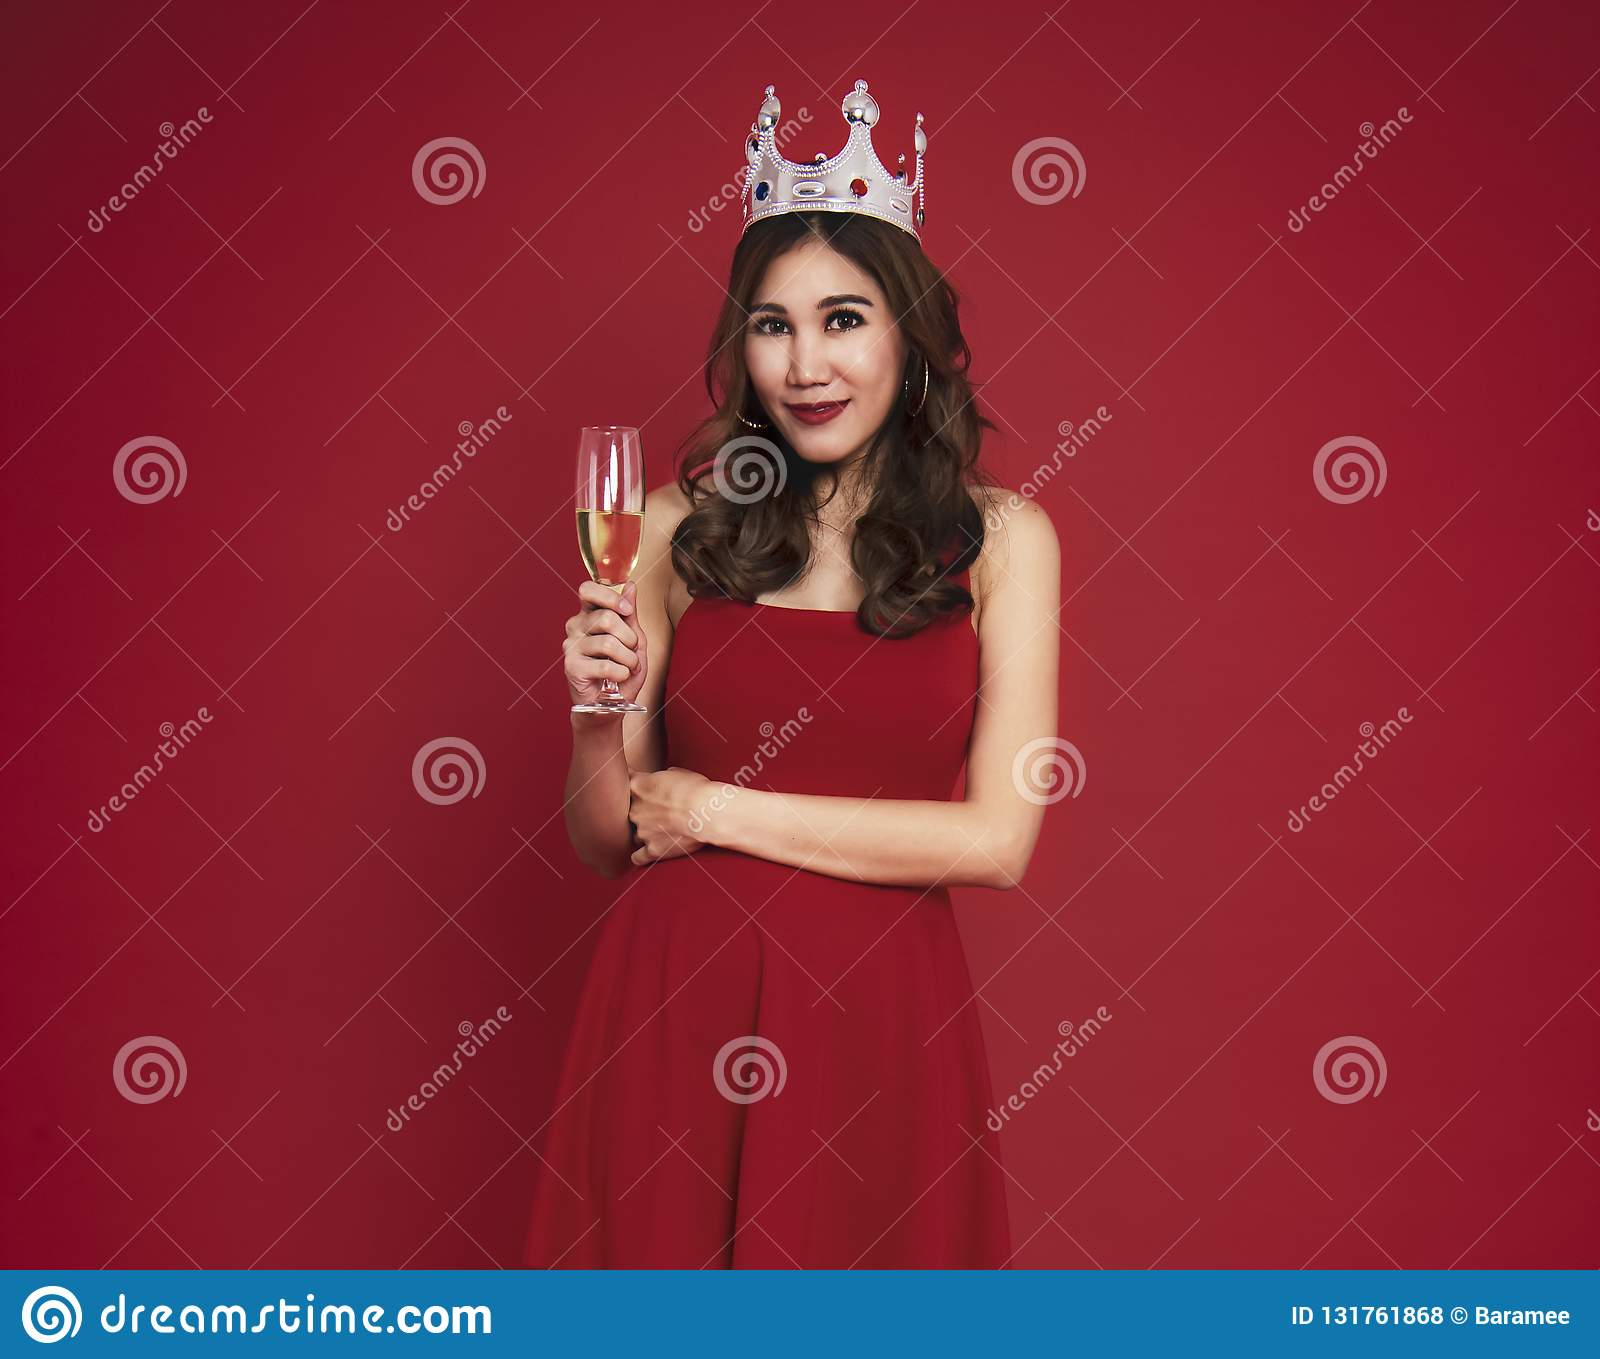 Young woman holding glasses of champagne and smiling while celebrating on red background. christmas and happy new year concept